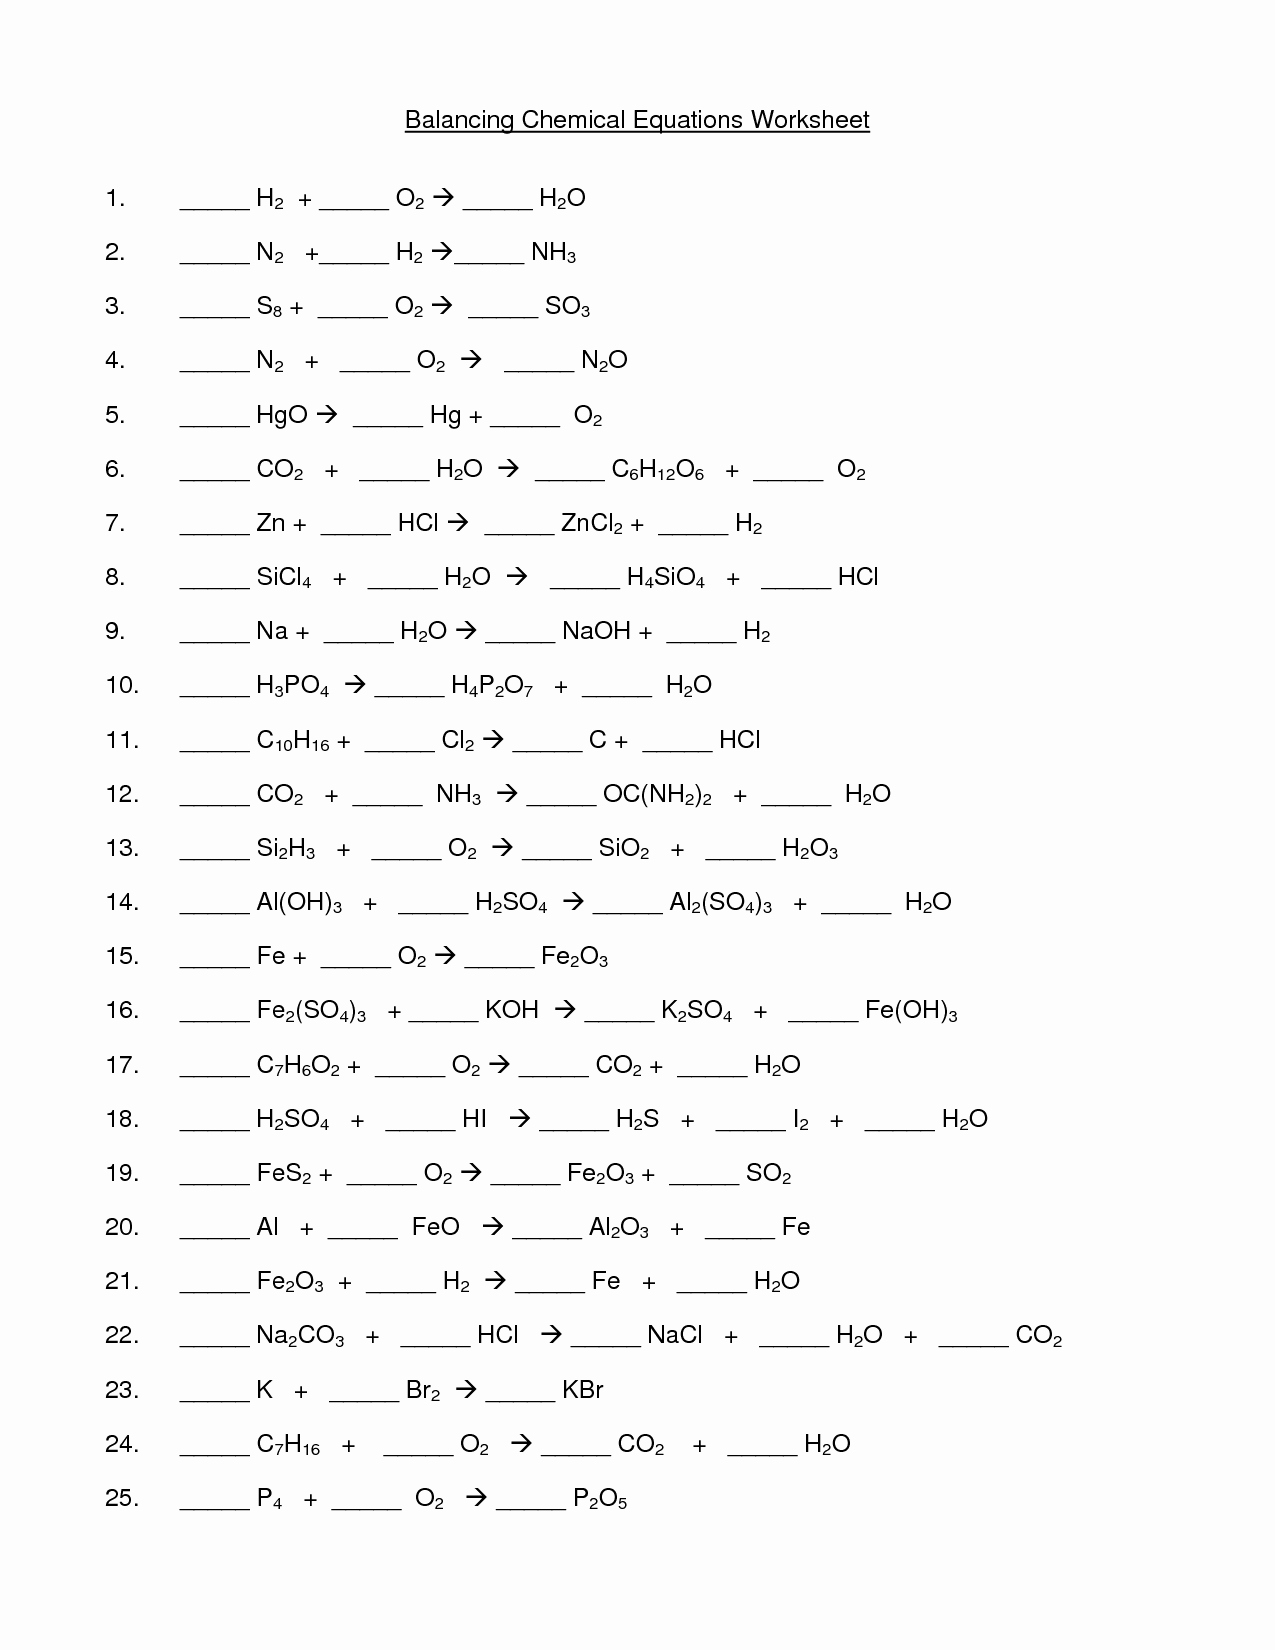 Balancing Equations Practice Worksheet Answers Inspirational 12 Best Of Balancing Chemical Equations Worksheet